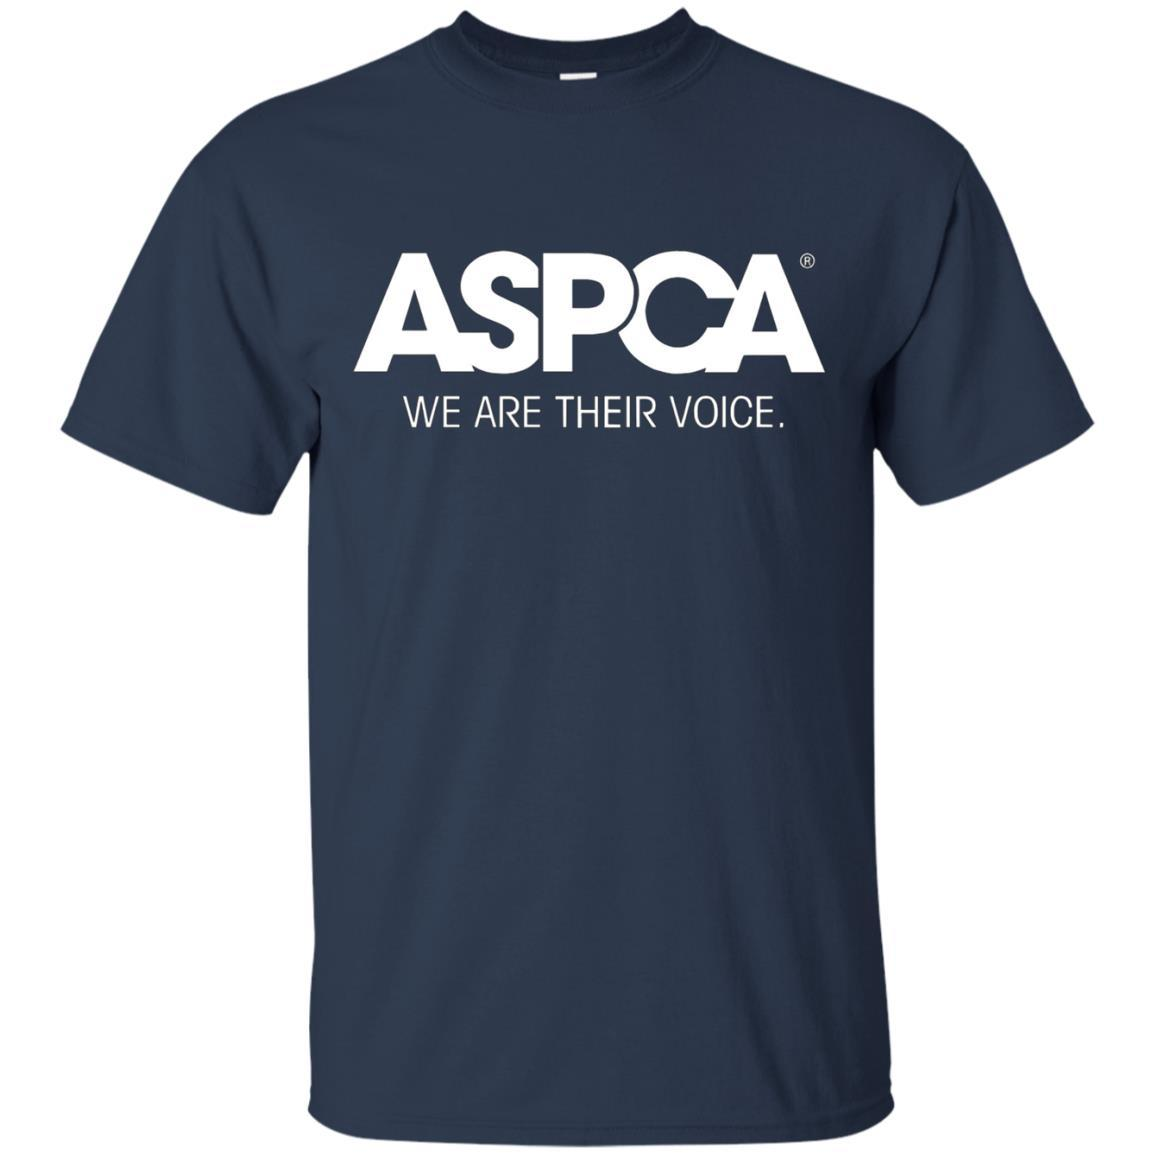 aspca apparel T-Shirt Navy / 5XL